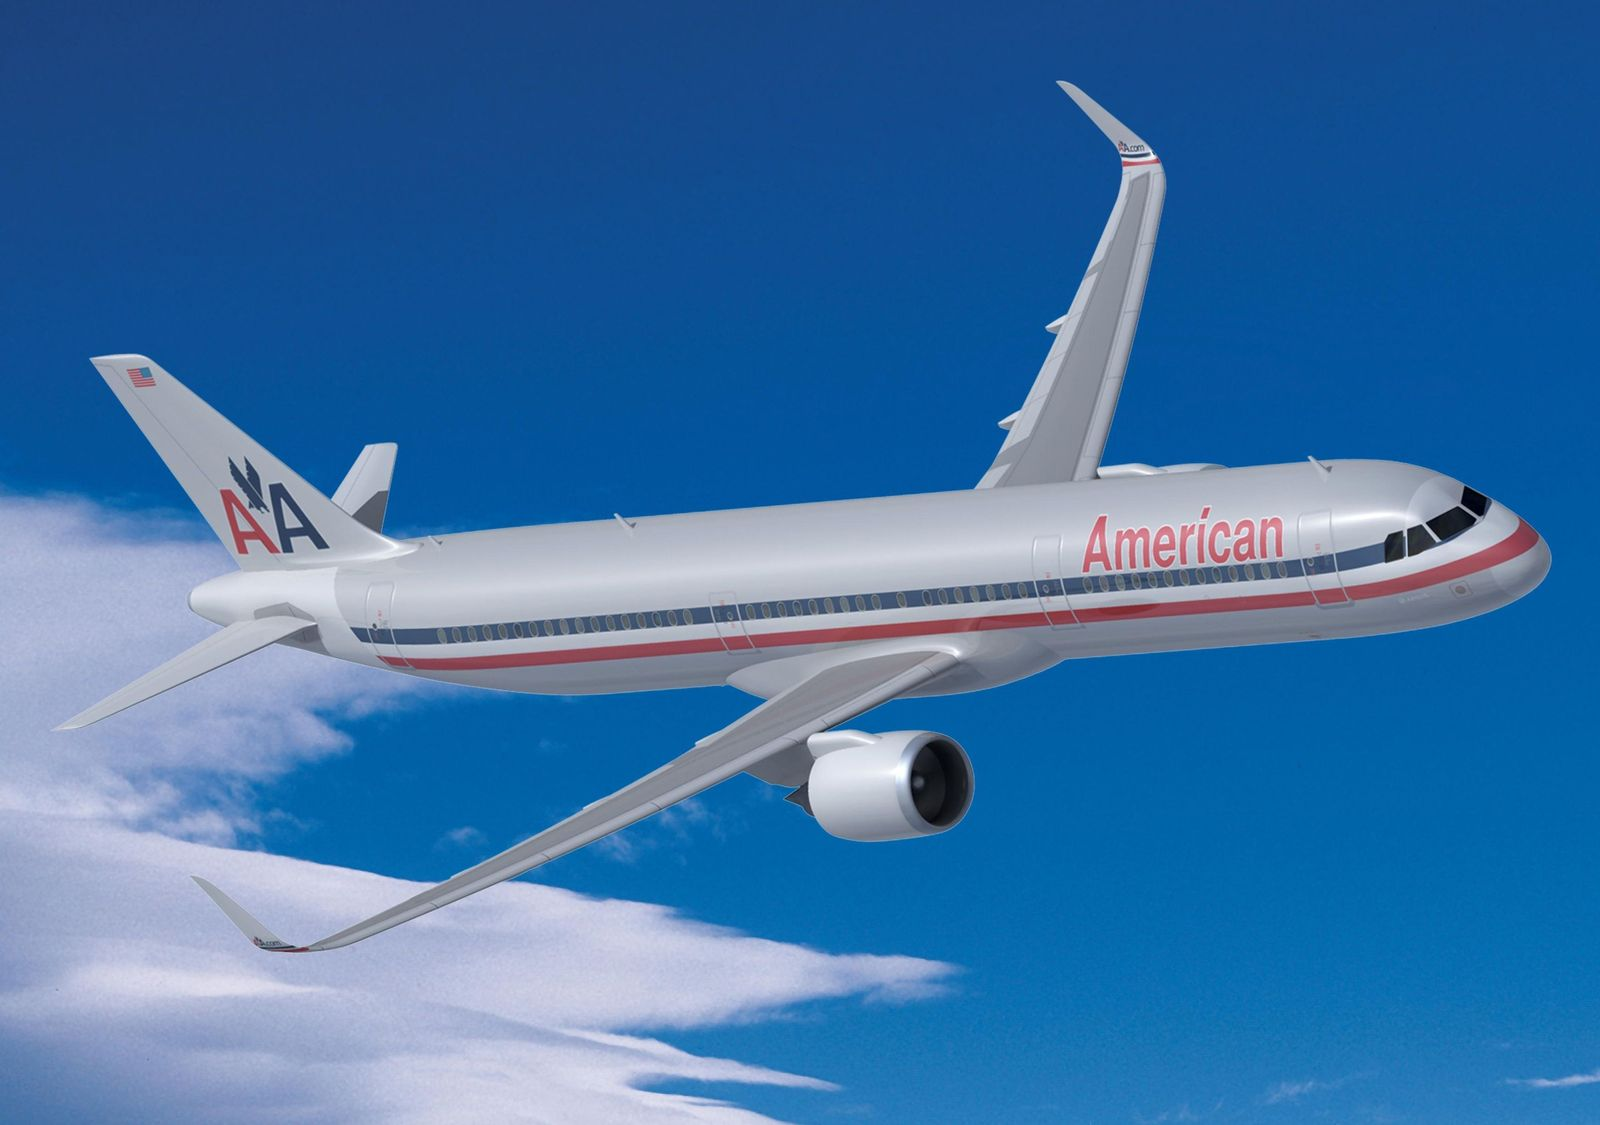 Airbus American Airlines / Airbus A321 Neo